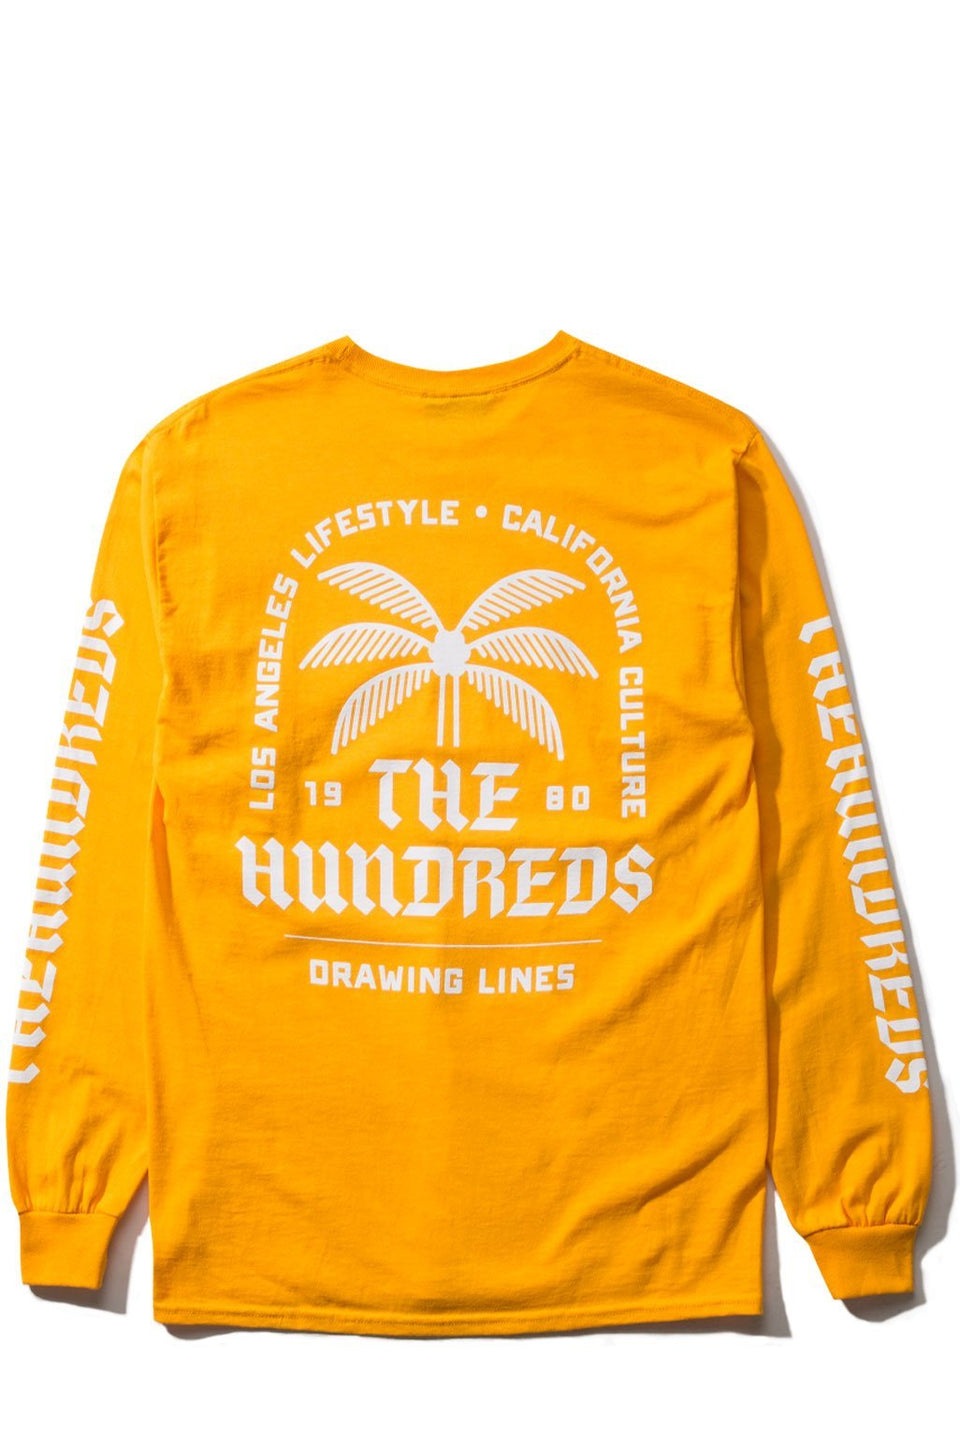 LA CA lifestyle L/S Shirt-TOPS-The Hundreds UK